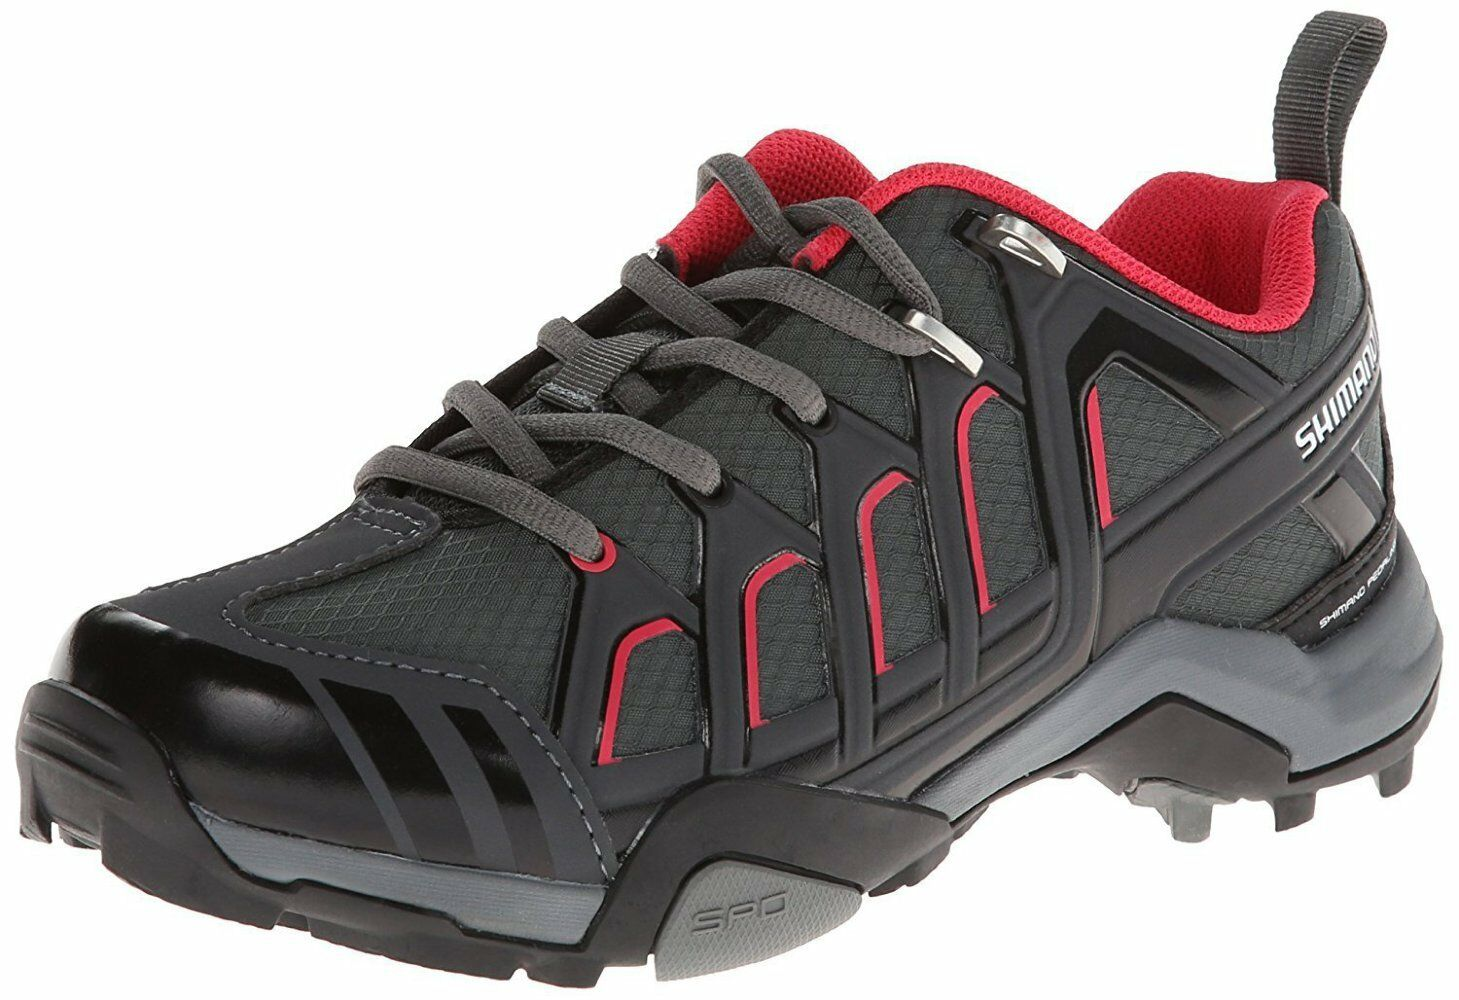 NEW Shimano SH-WM34 Cycling shoes - Demo Model   we offer various famous brand